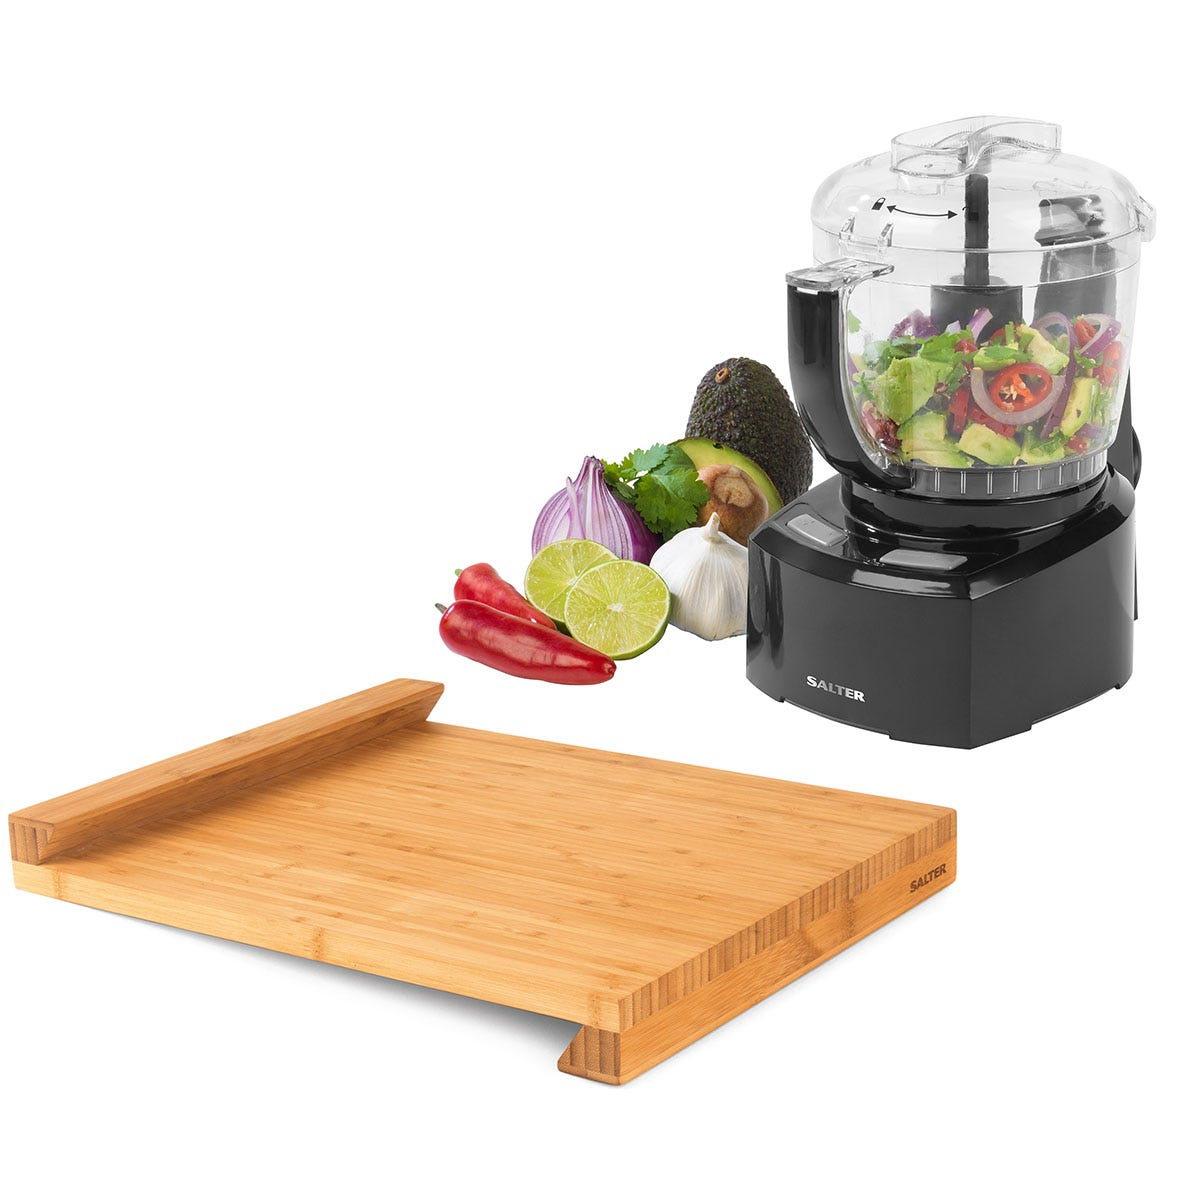 Salter COMBO-7064 8-in-1 Compact Prep Pro Mini Food Processor and Bamboo Worktop Chopping Board with Lip - Black